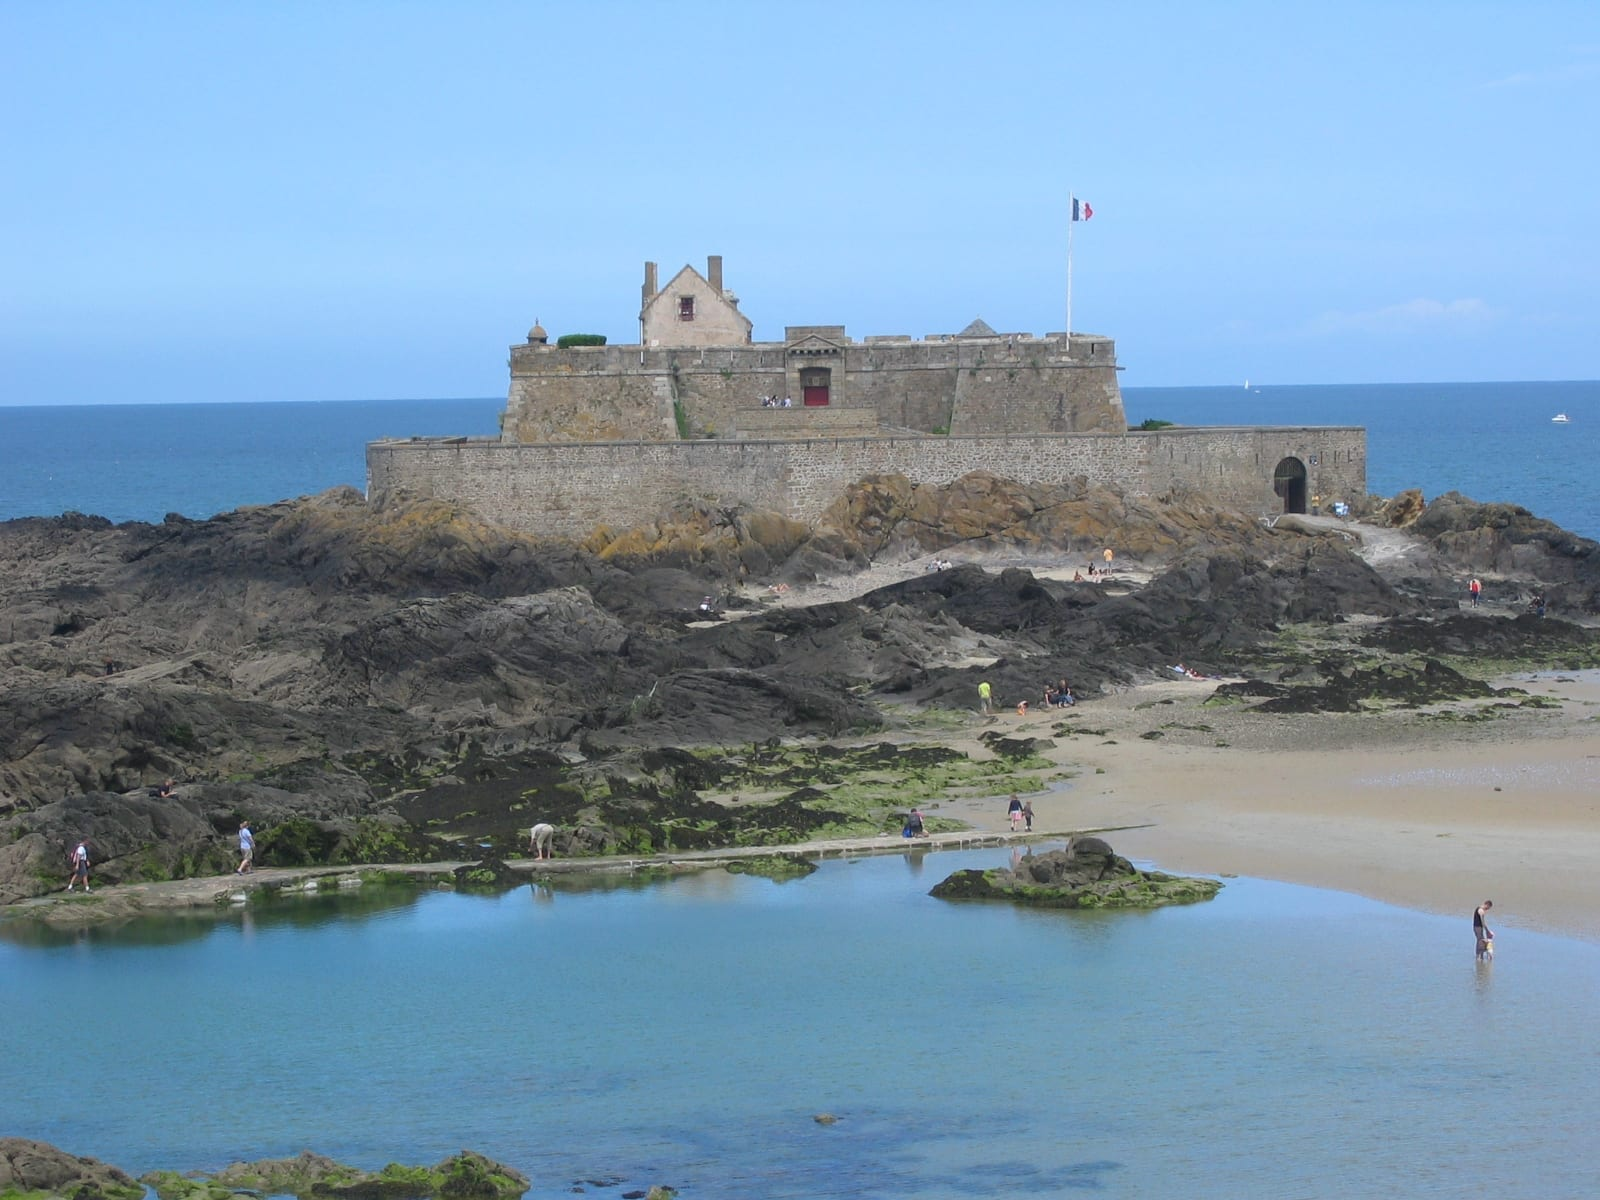 st-malo-brittany